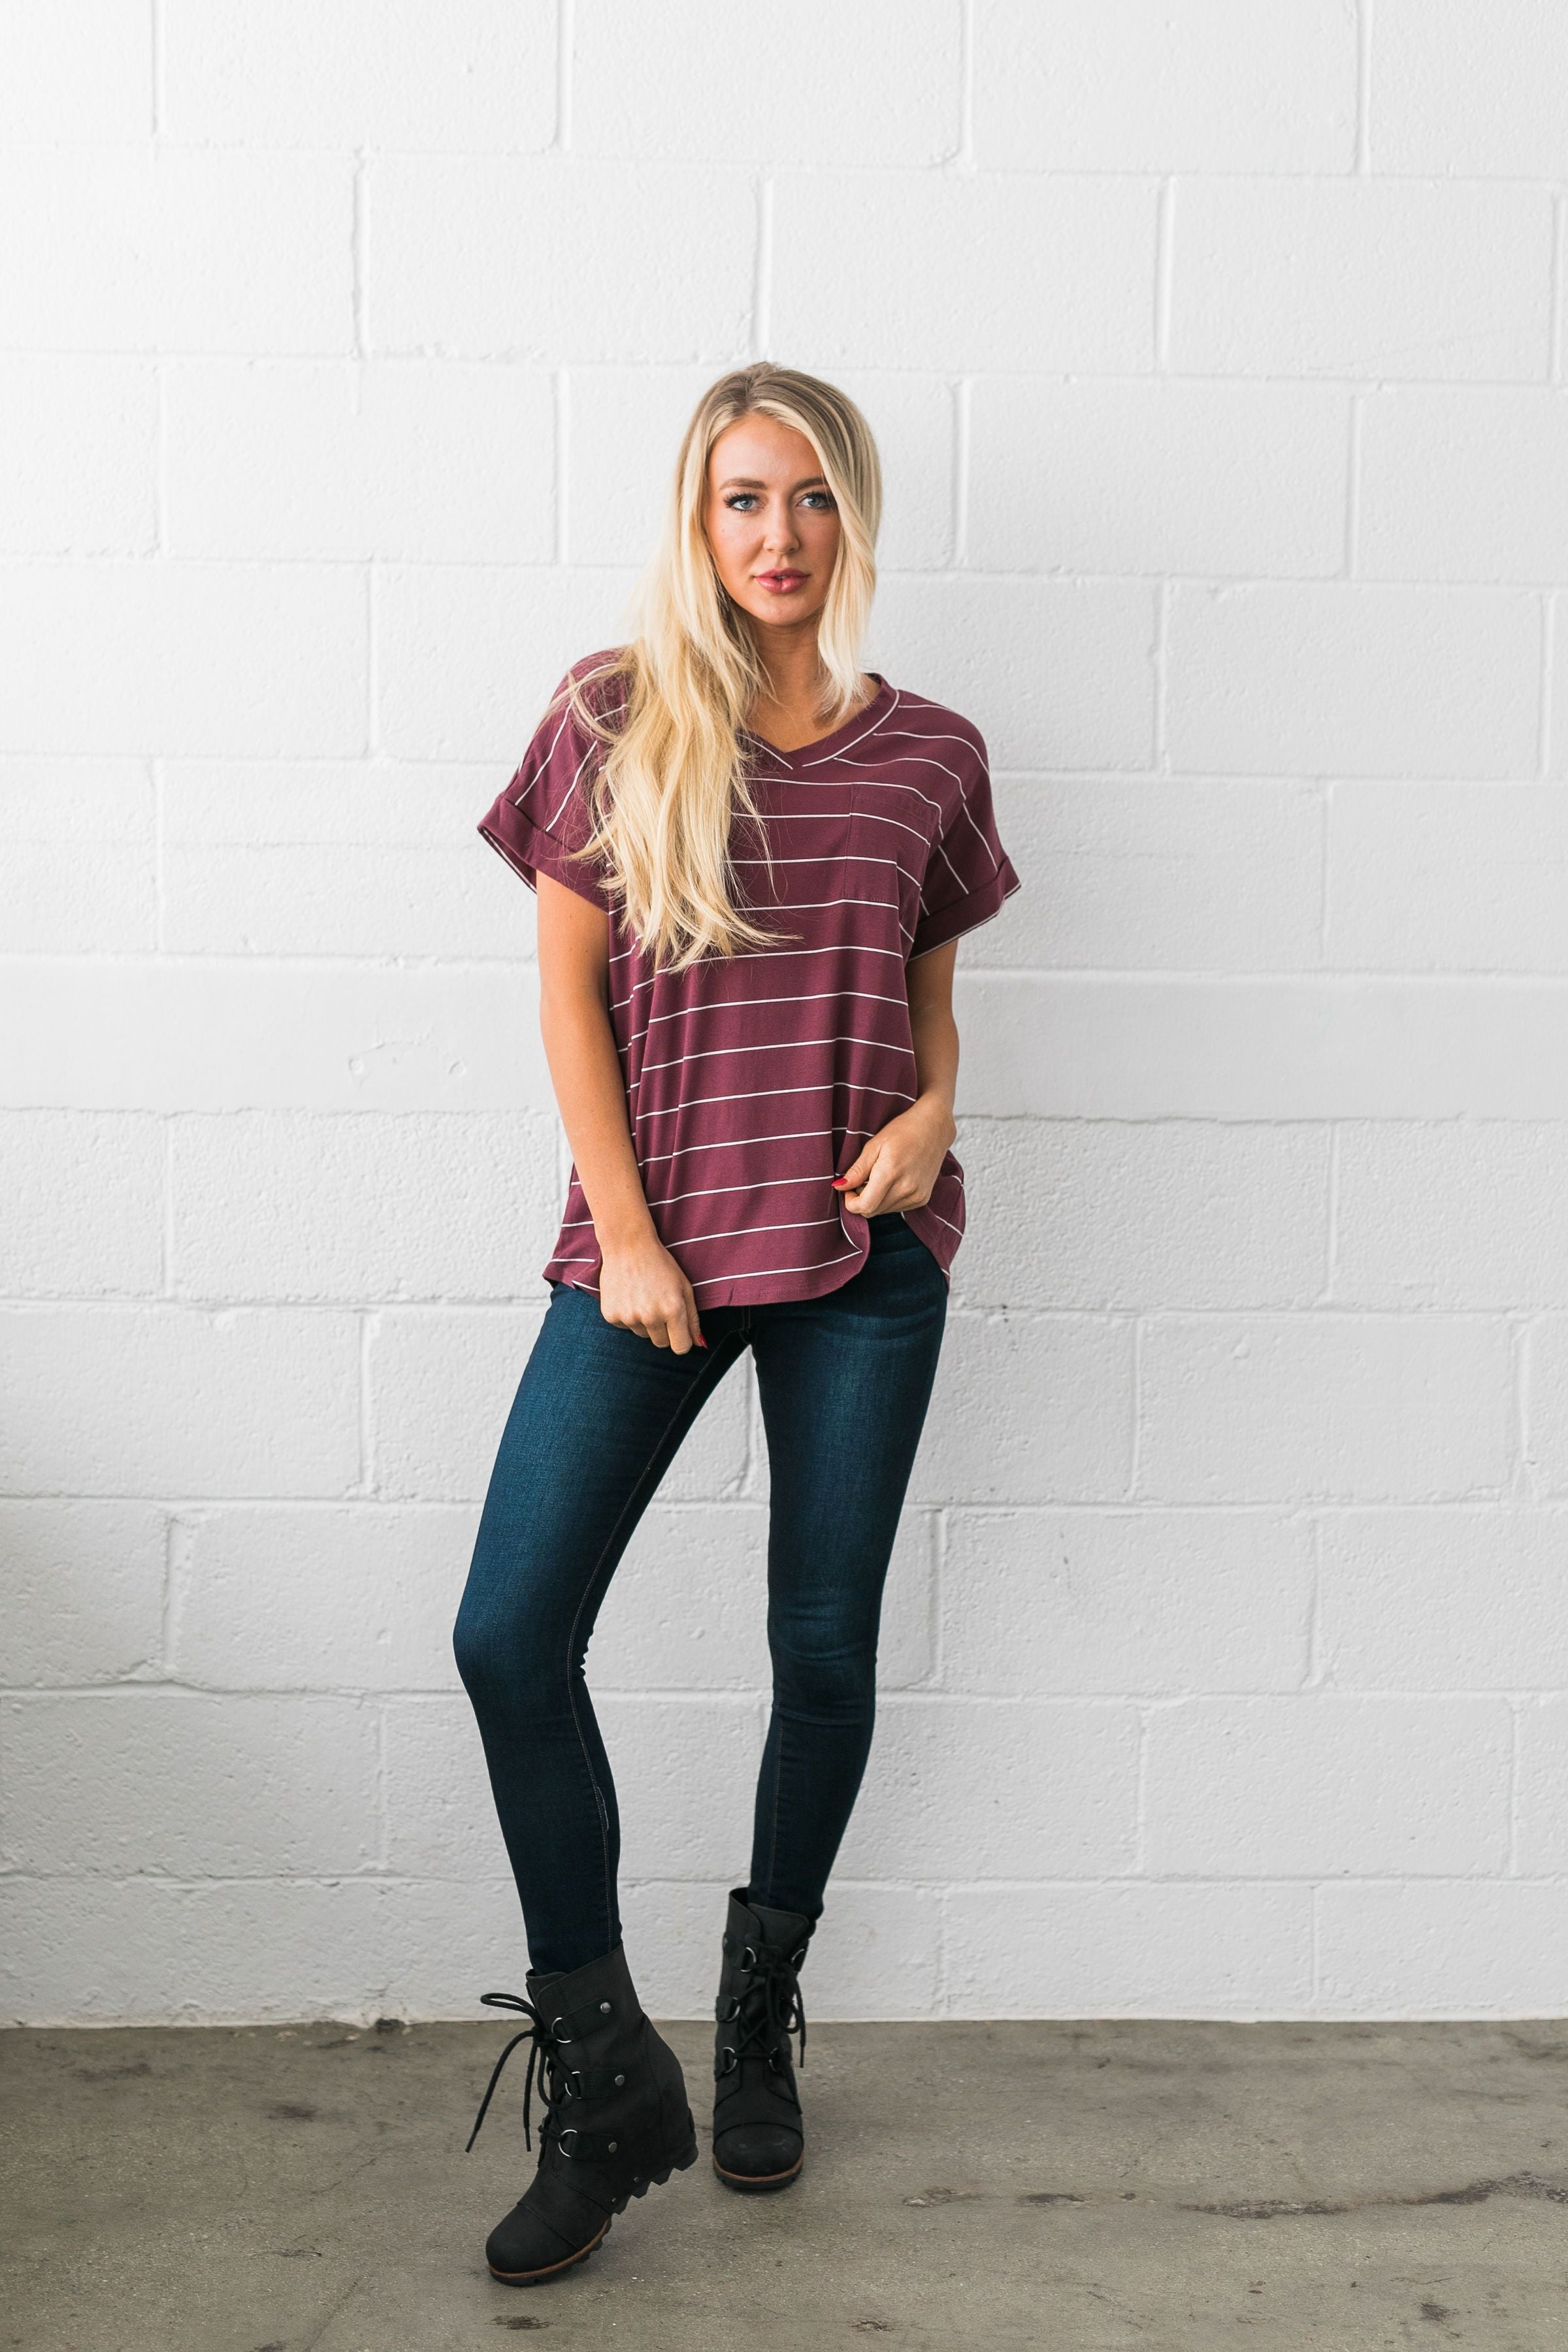 Tomboy V-Neck Tee In Burgundy - ALL SALES FINAL